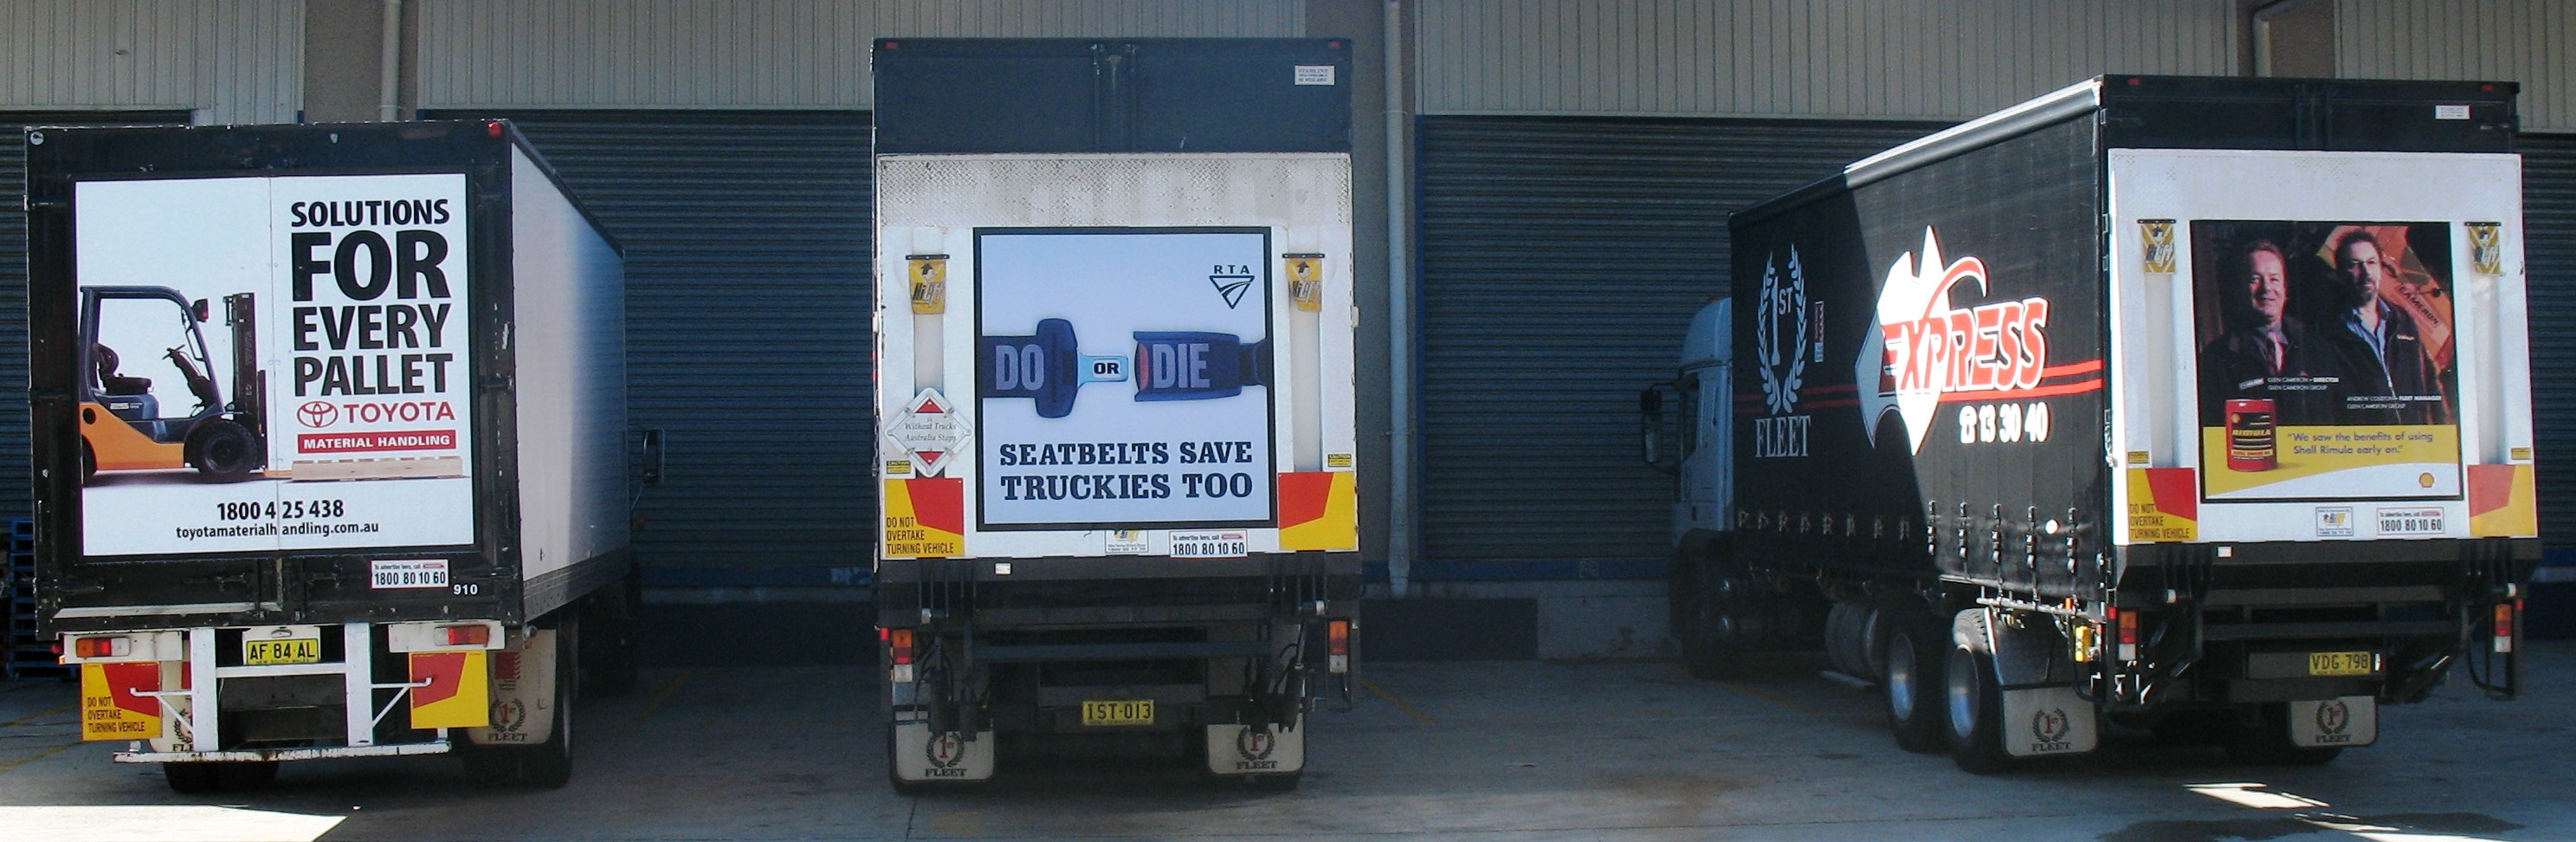 Truck advertising. TruckBacks. TMHA (Toyota Material Handling Australia) 8 series Solutions For Every Pallet campaign. Framed. Shell Rimula campaign x 2. Both flatbacks. All on First Fleet B-Doubles. RTA TruckBack Seatbelts Save Truckies Too RMS TfNSW. Tailgate.